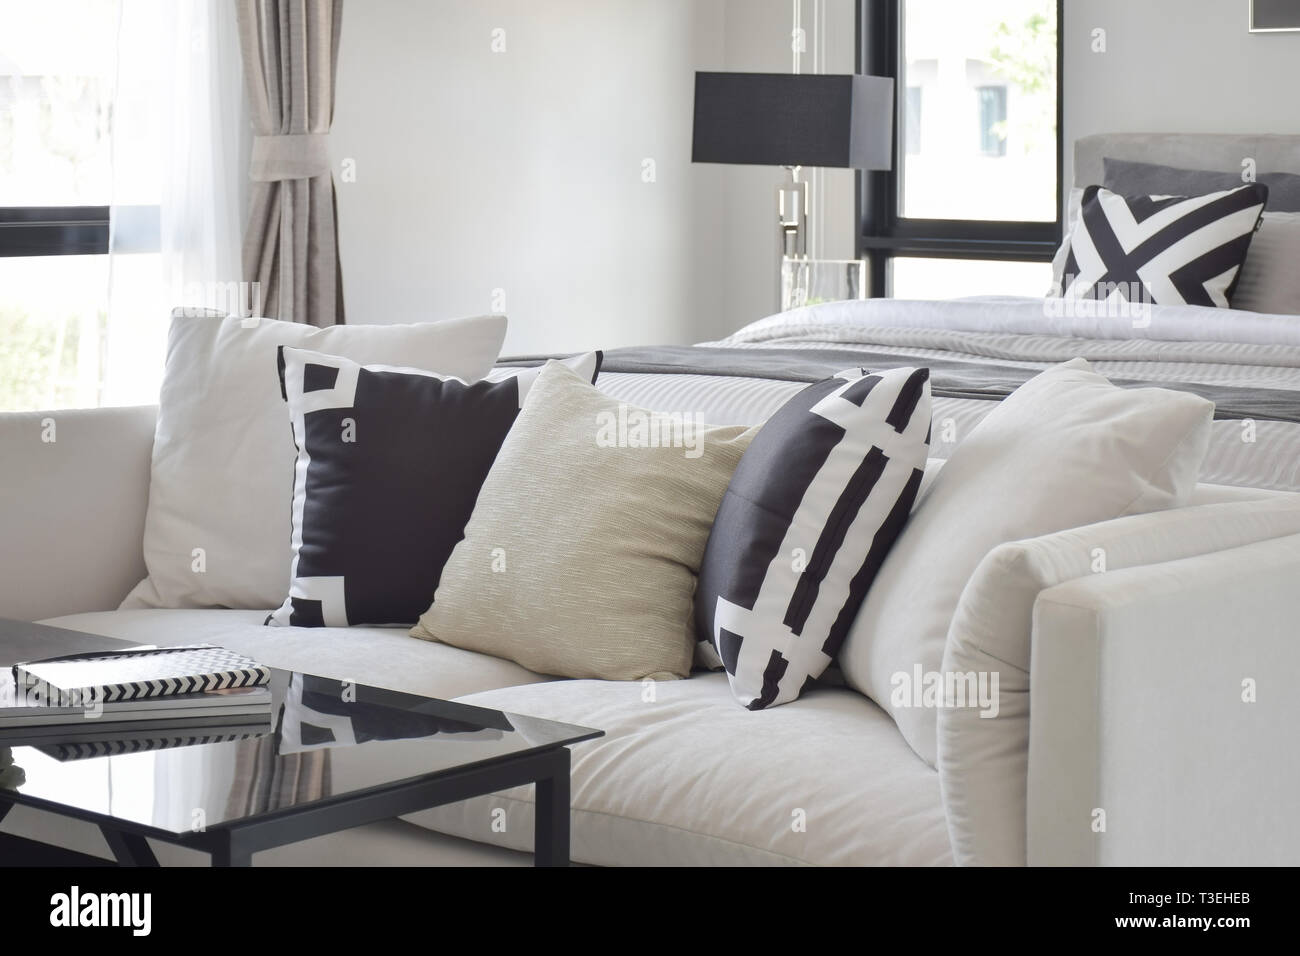 https www alamy com black and white graphic printed pillow on off white sofa next to bed image243110179 html